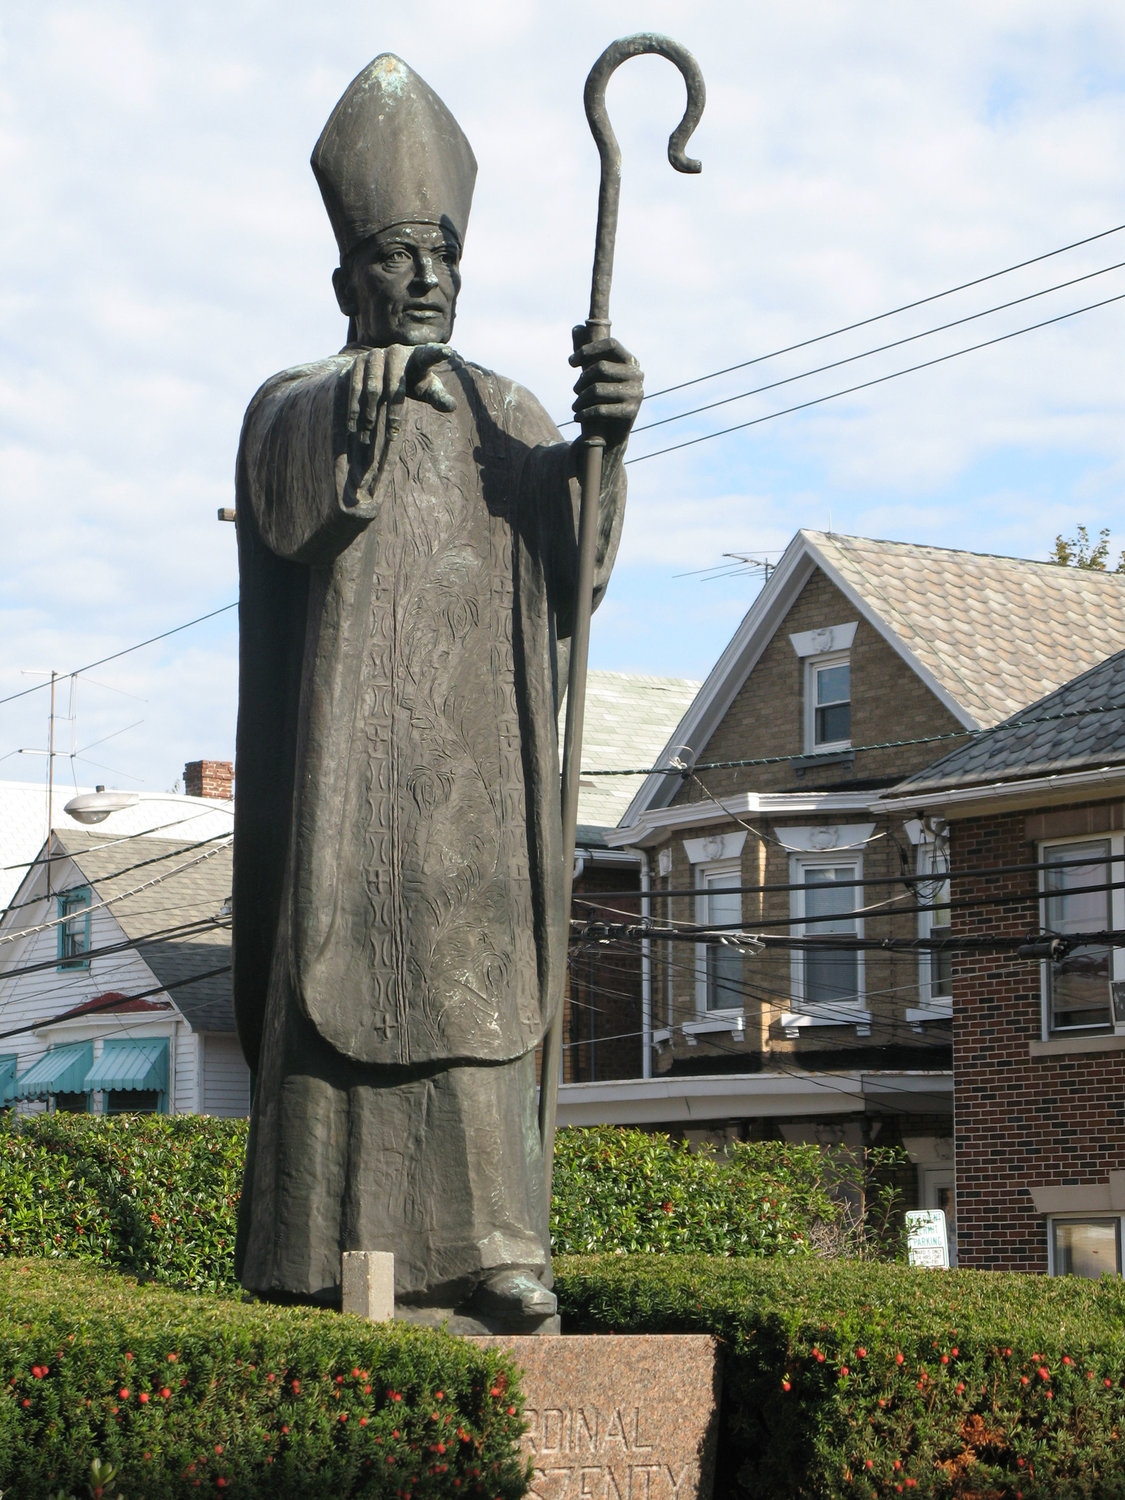 HEROIC VIRTUE—A statue of Cardinal Jozsef Mindszenty of Hungary is seen in a garden outside St. Ladislaus Church in New Brunswick, N.J., in 2009. Pope Francis signed a decree Feb. 12 advancing the sainthood cause of Cardianl Mindszenty, who had been jailed and exiled by the communists.